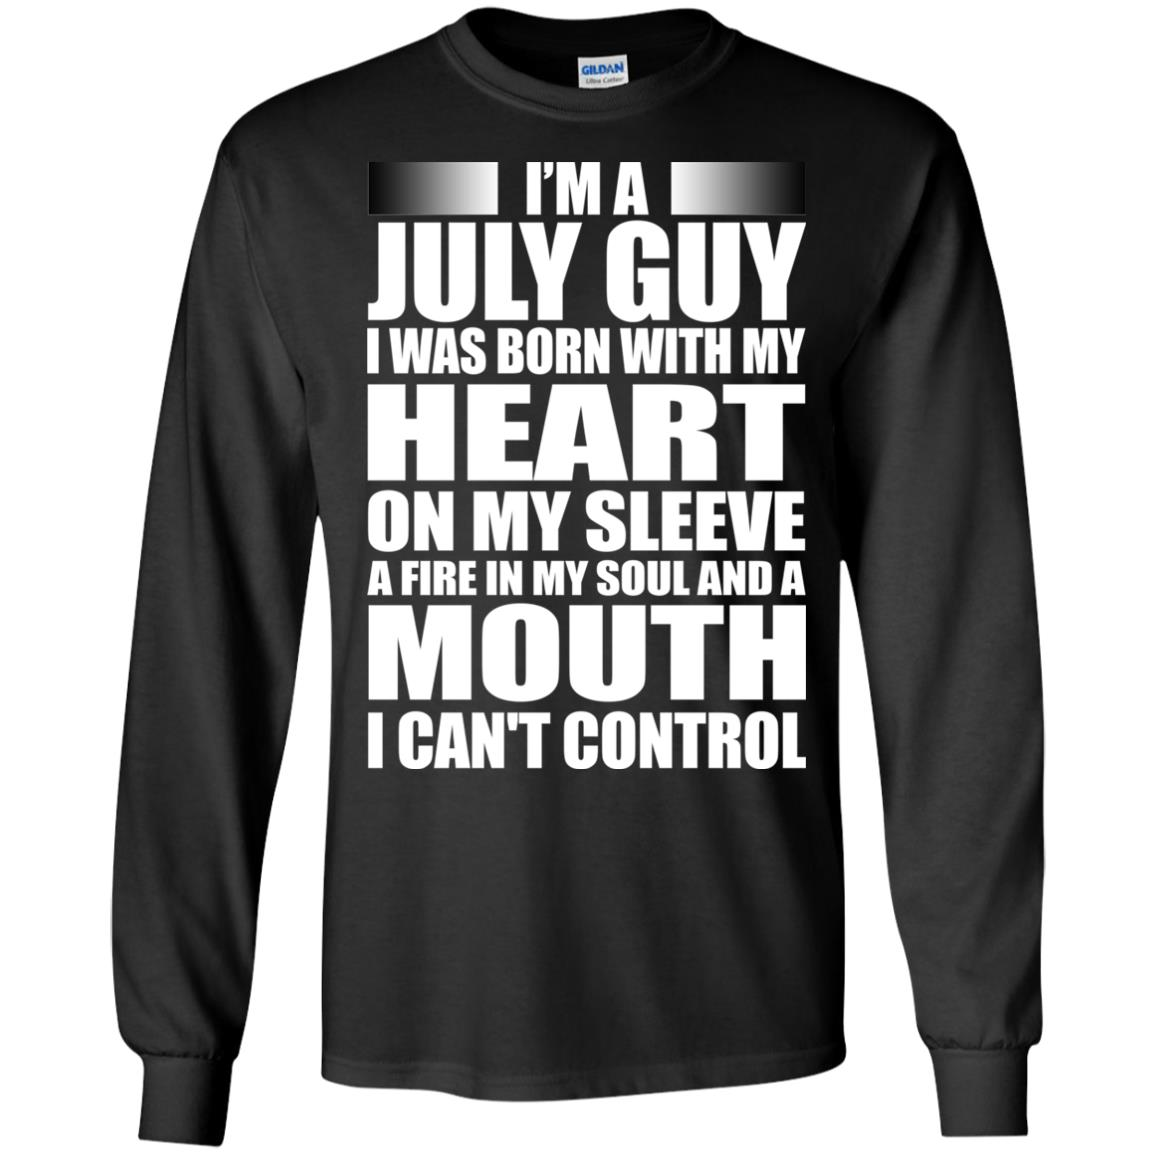 image 913 - I'm a July guy I was born with my heart on my sleeve shirt, hoodie, tank